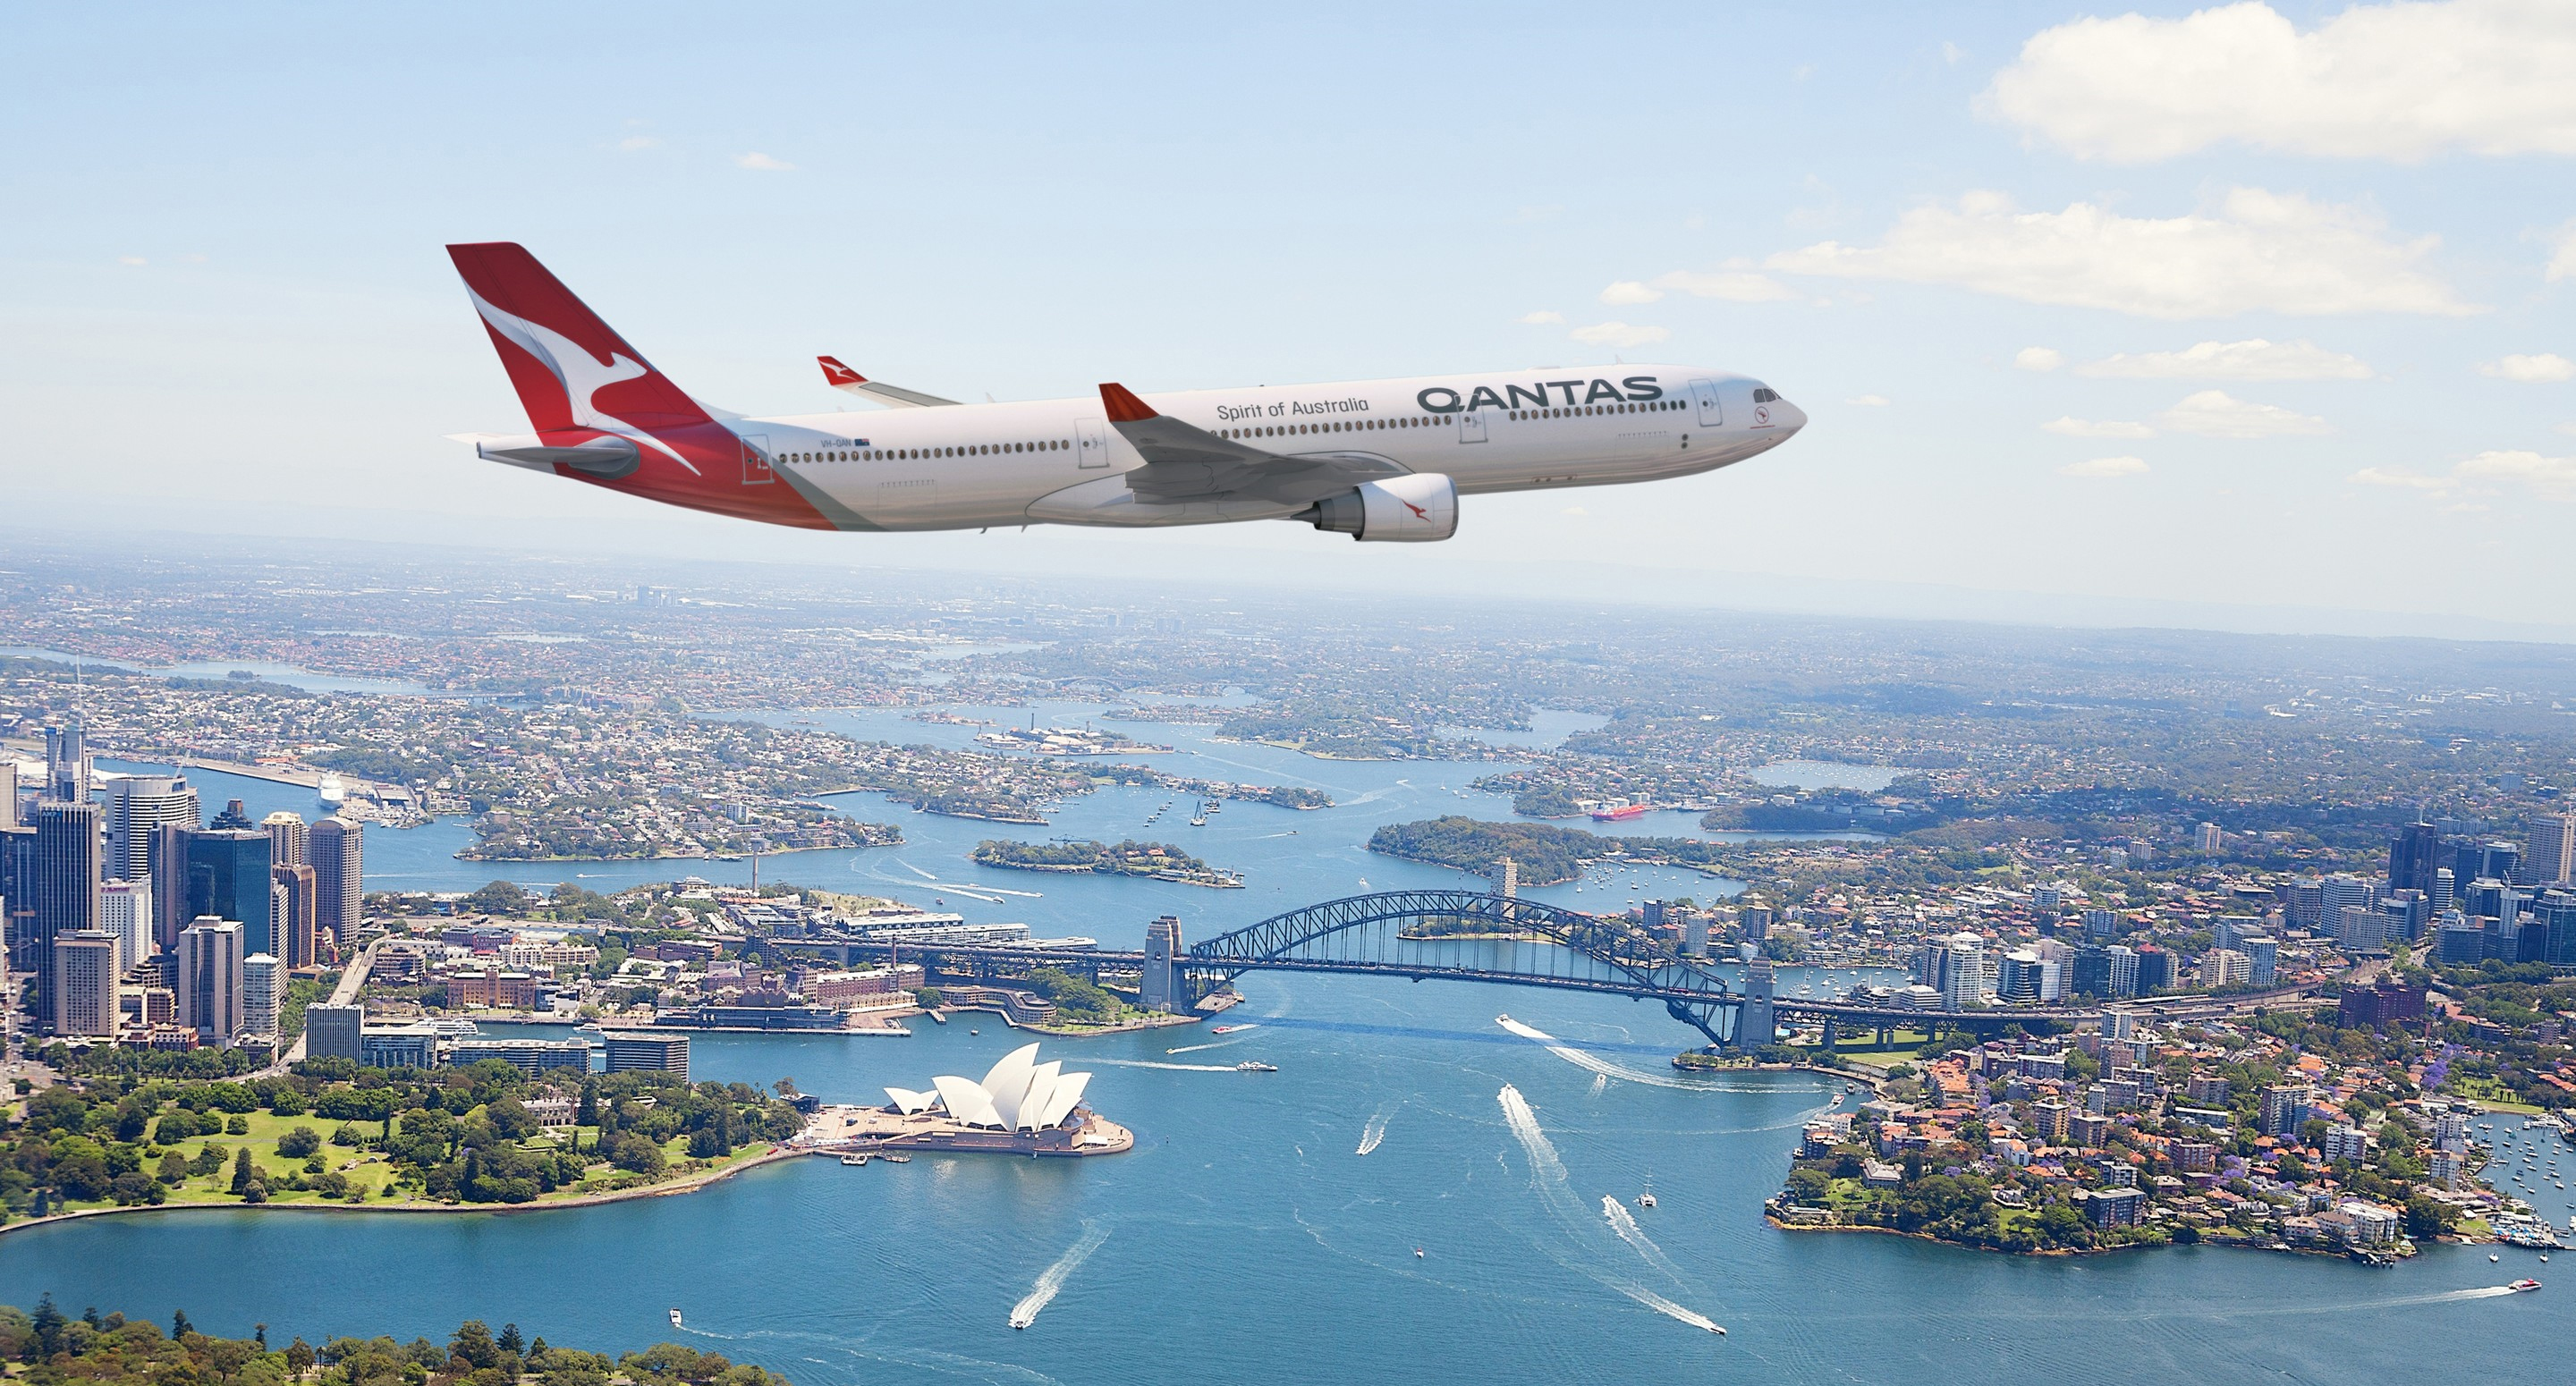 Qantas A330 over Sydney Harbour, Sydney, NSW